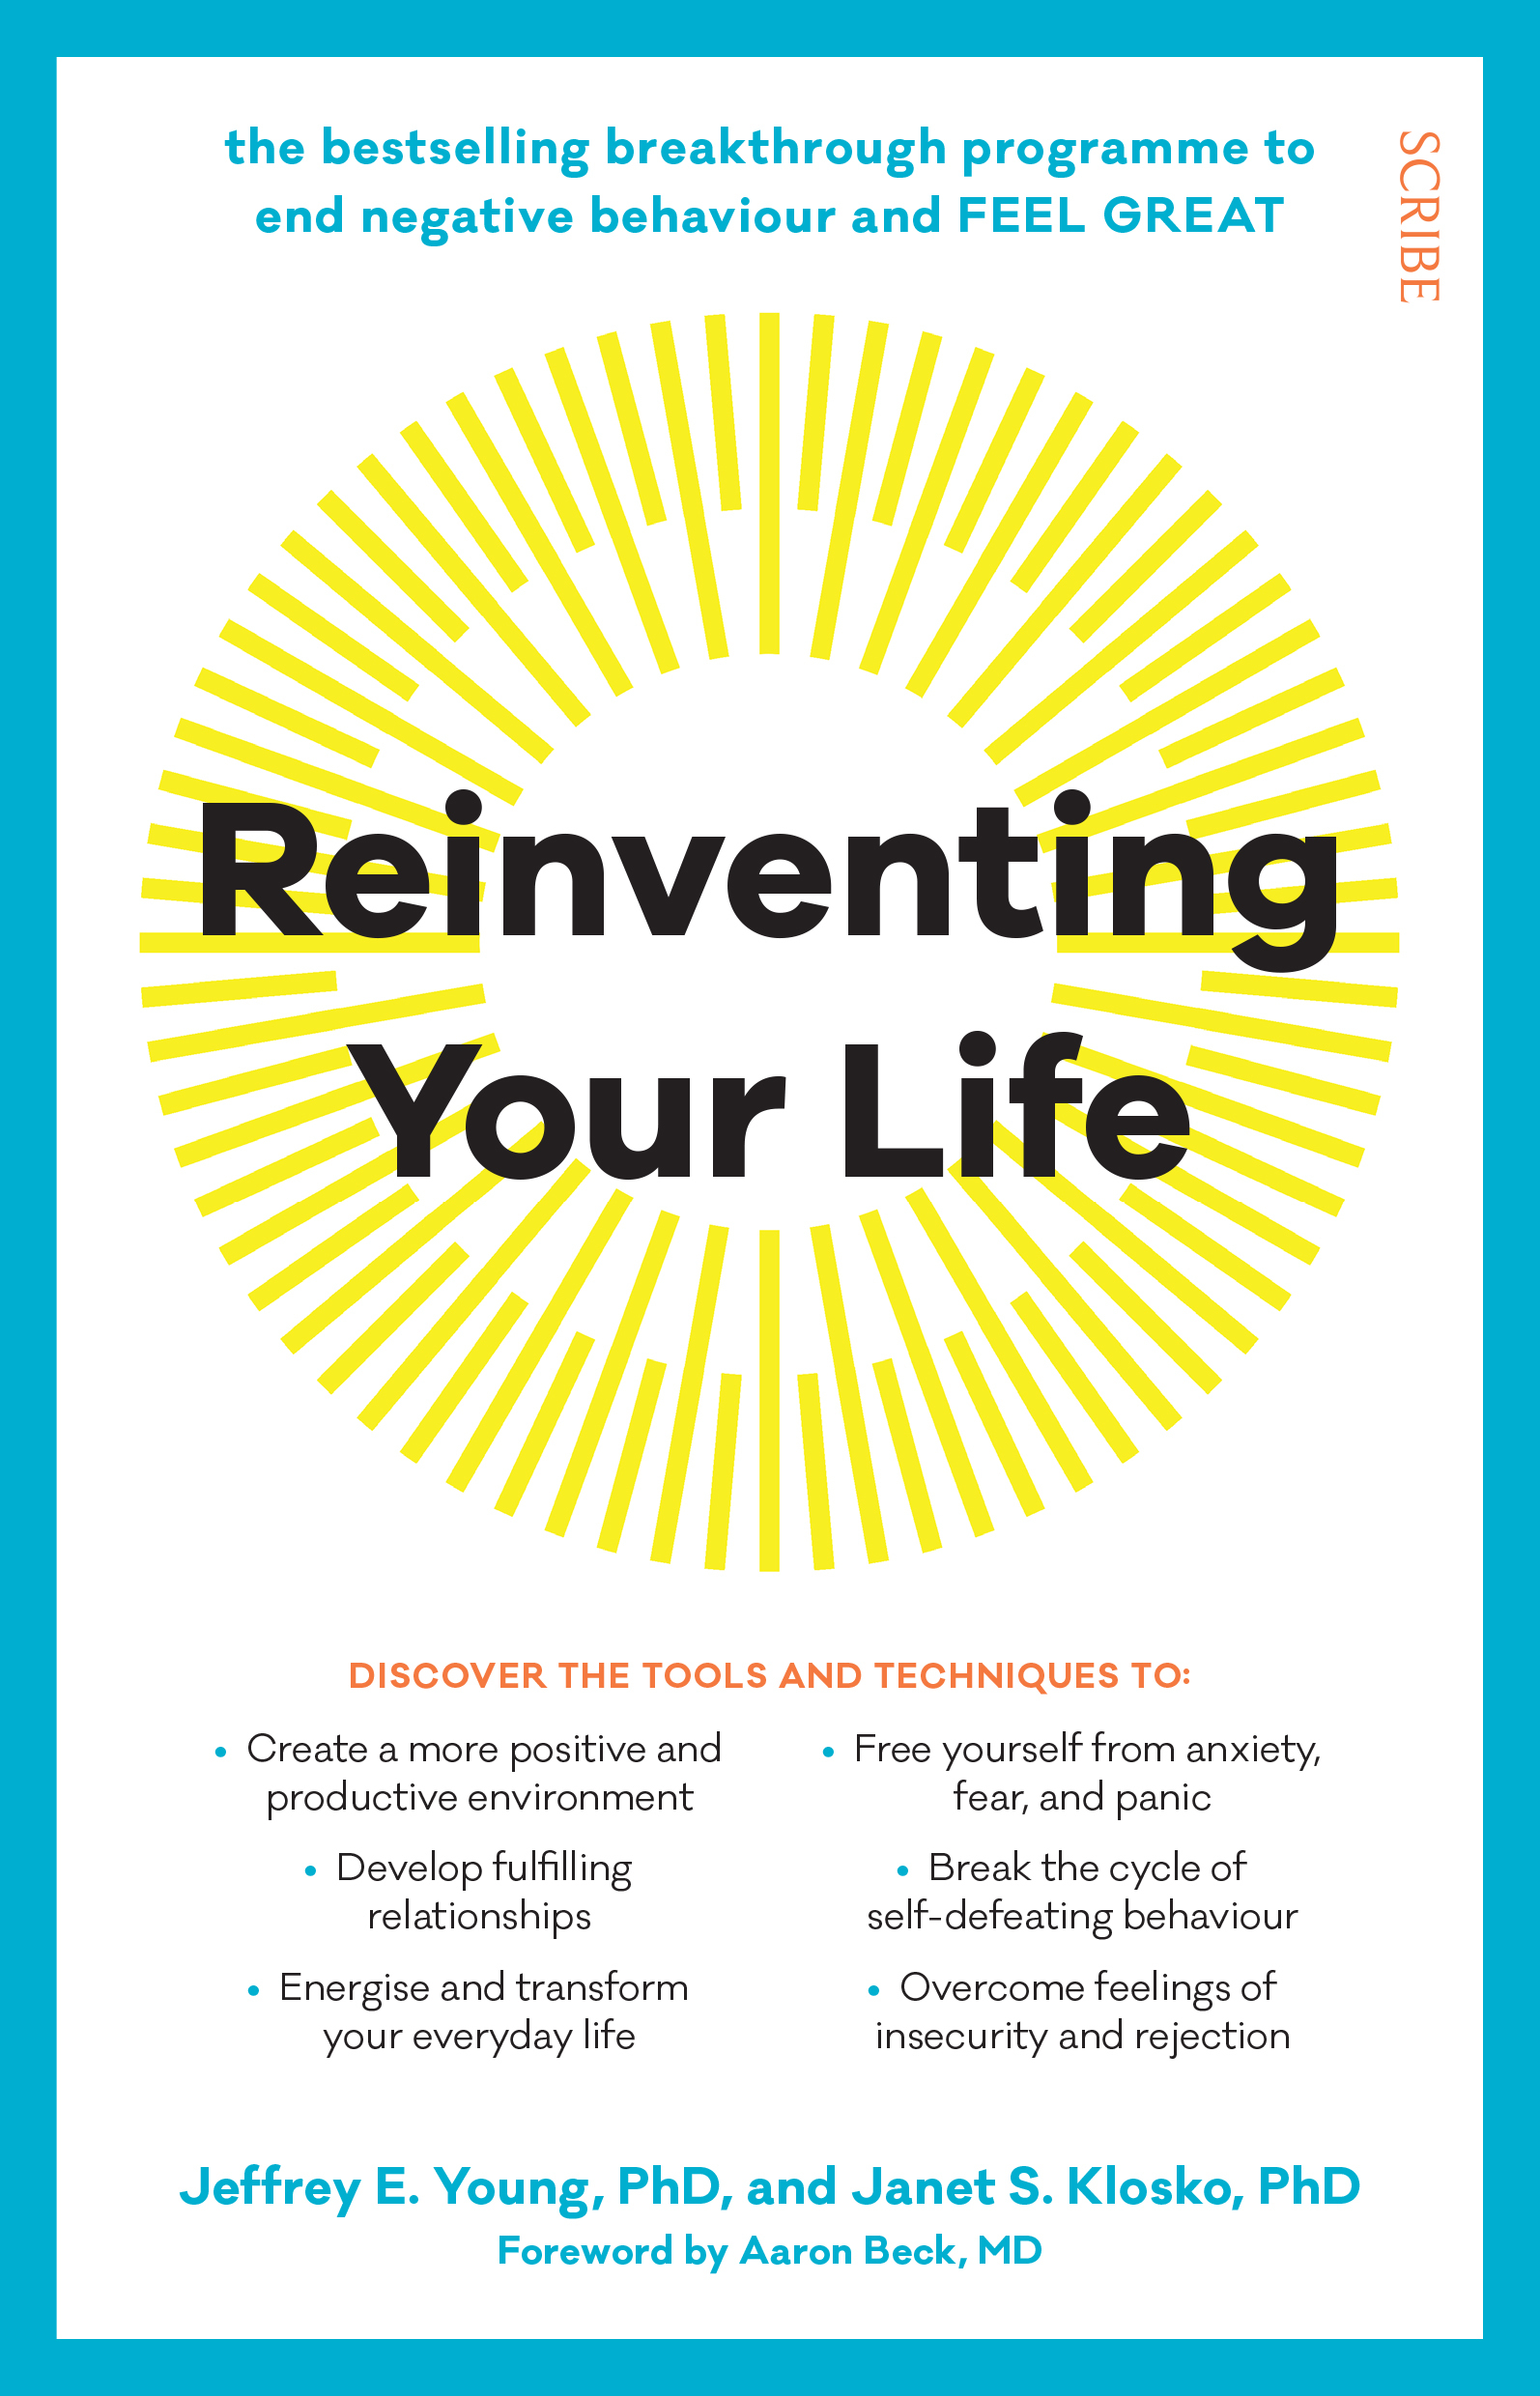 Reinventing Your Life: the breakthrough programme to end negative behaviour and feel great again